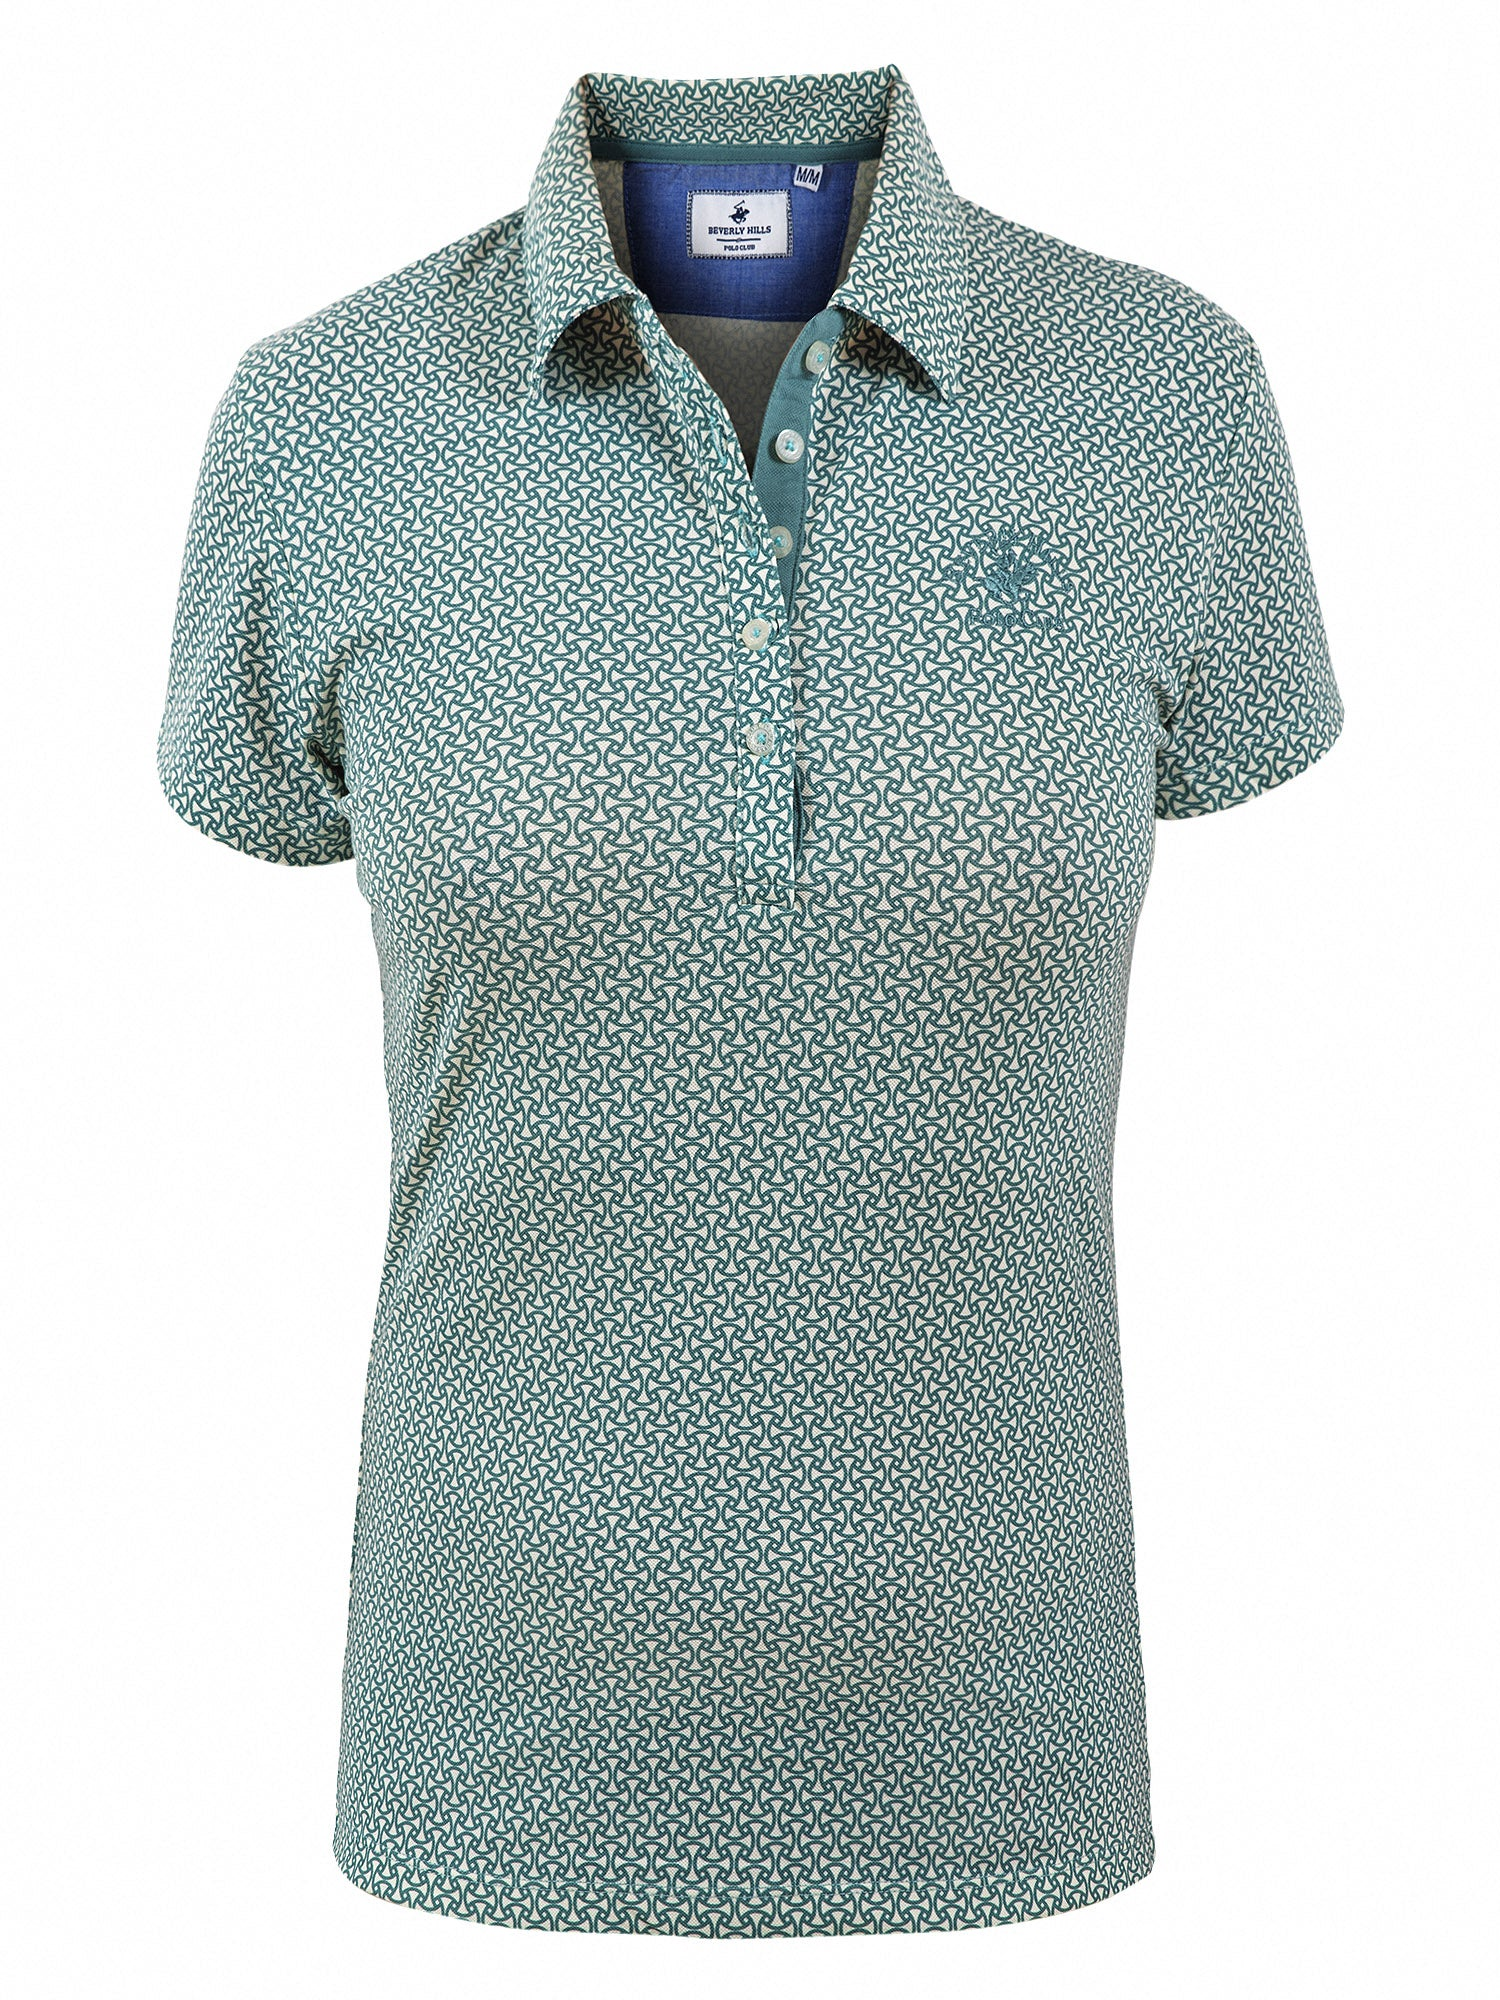 PREMIUM MINT FASHION POLO